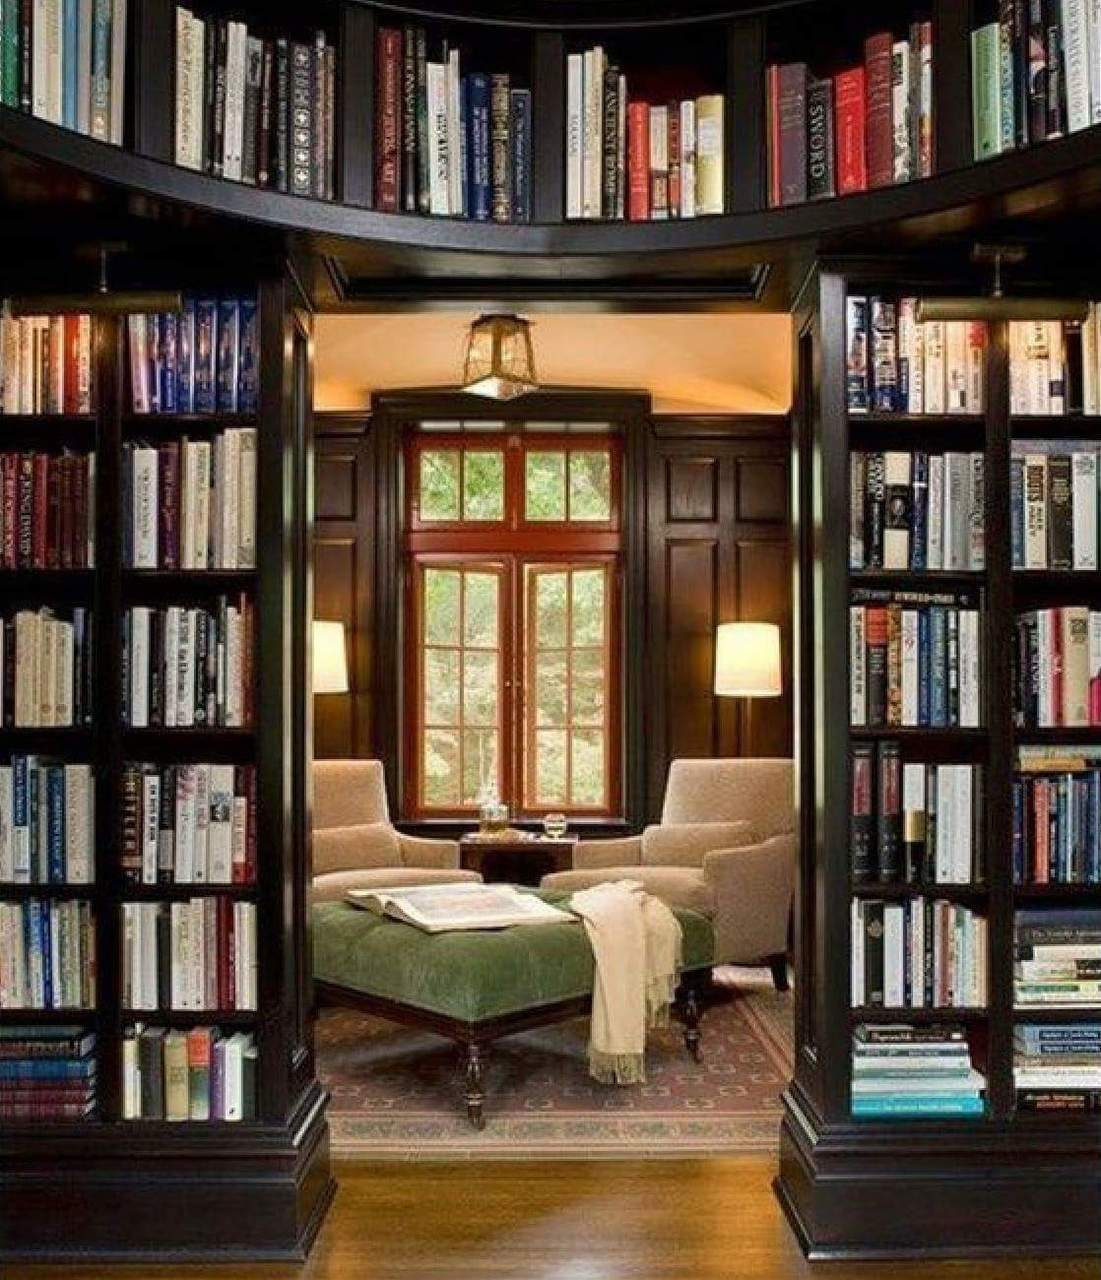 Home library decorating ideas brucall.com.